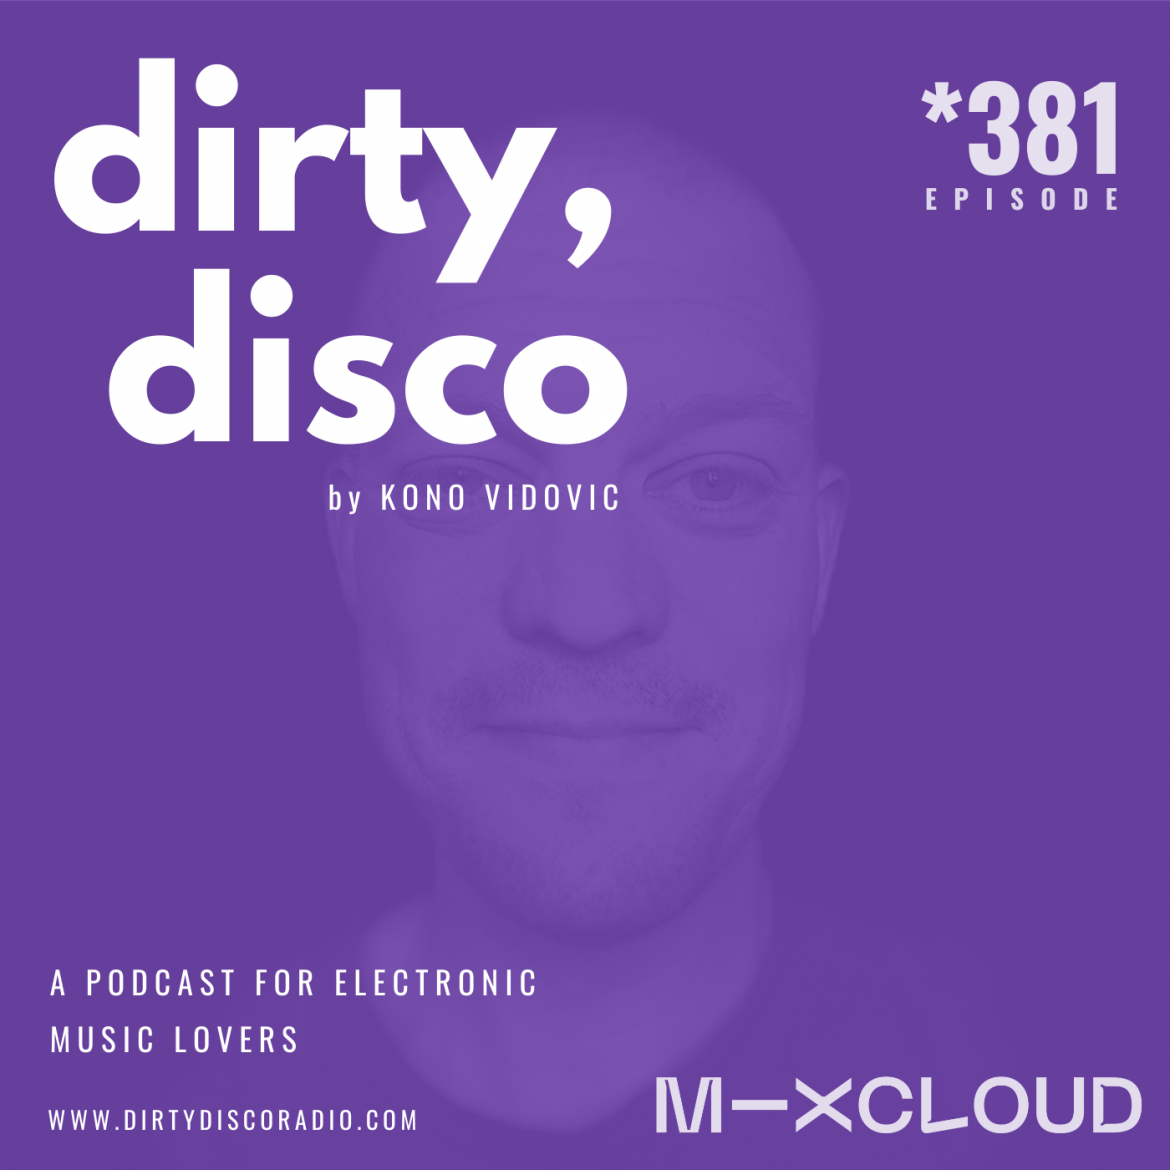 Lockdown Deep House essentials | Dirty Disco 381